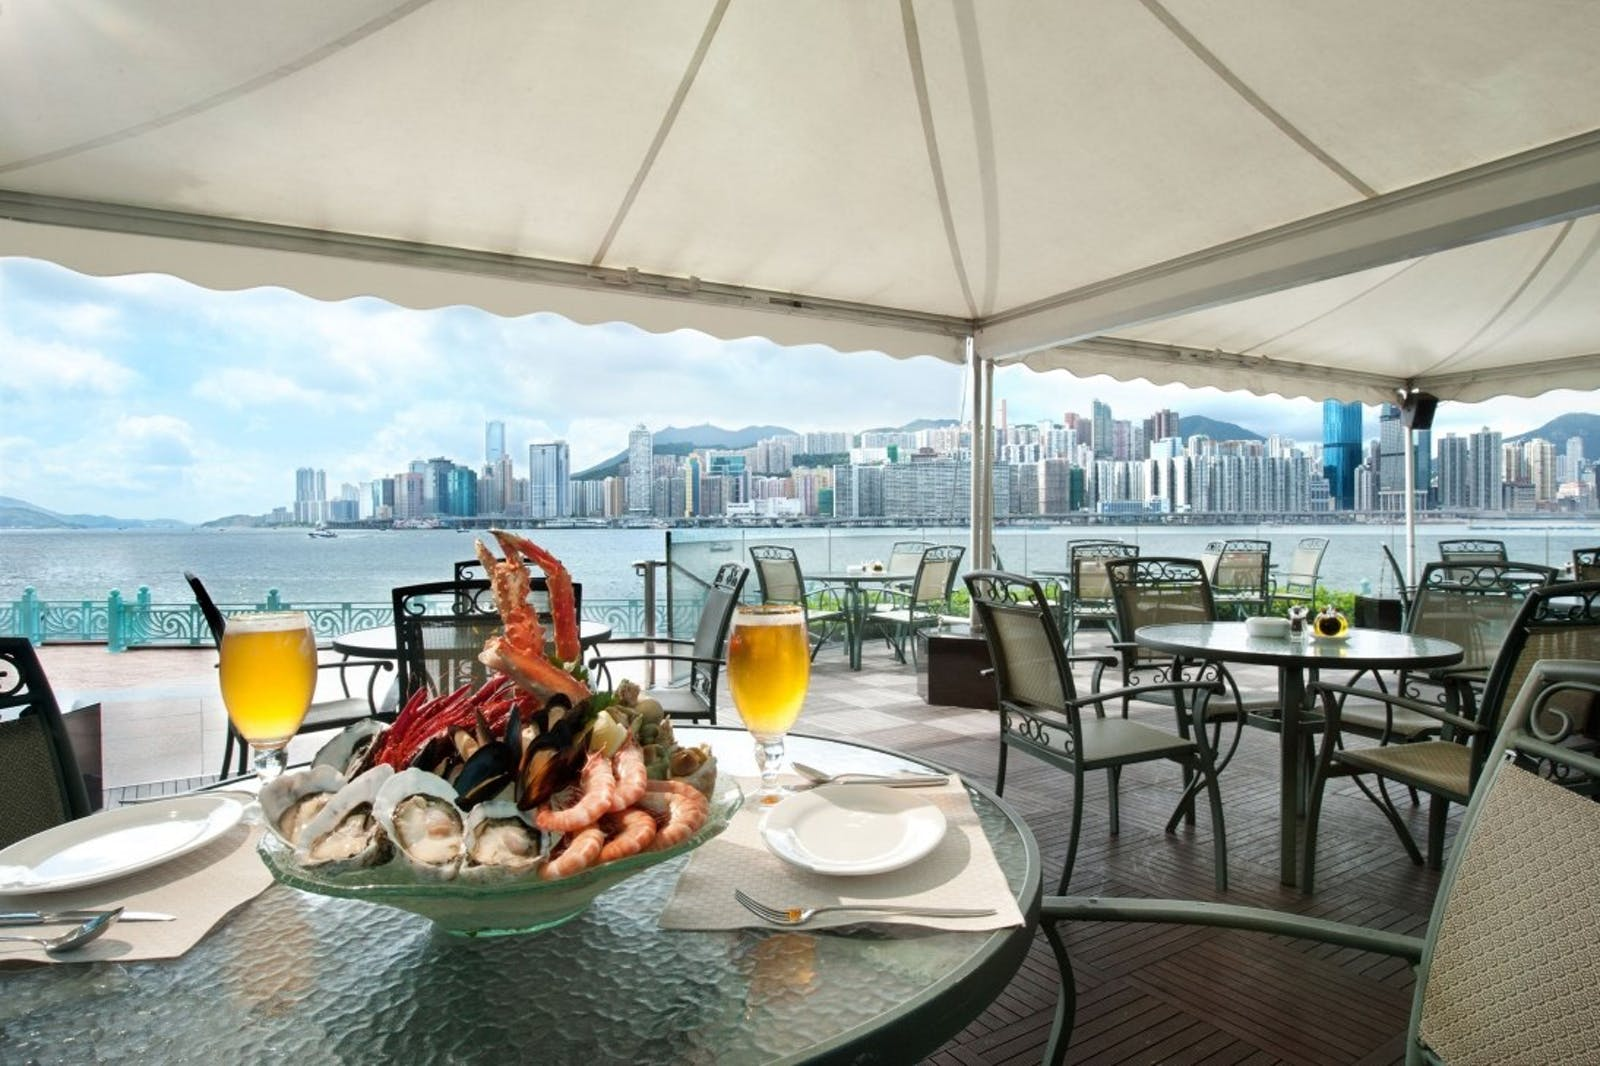 Waterfront Bar & Terrace (Al-fresco) at Harbour Grand Kowloon